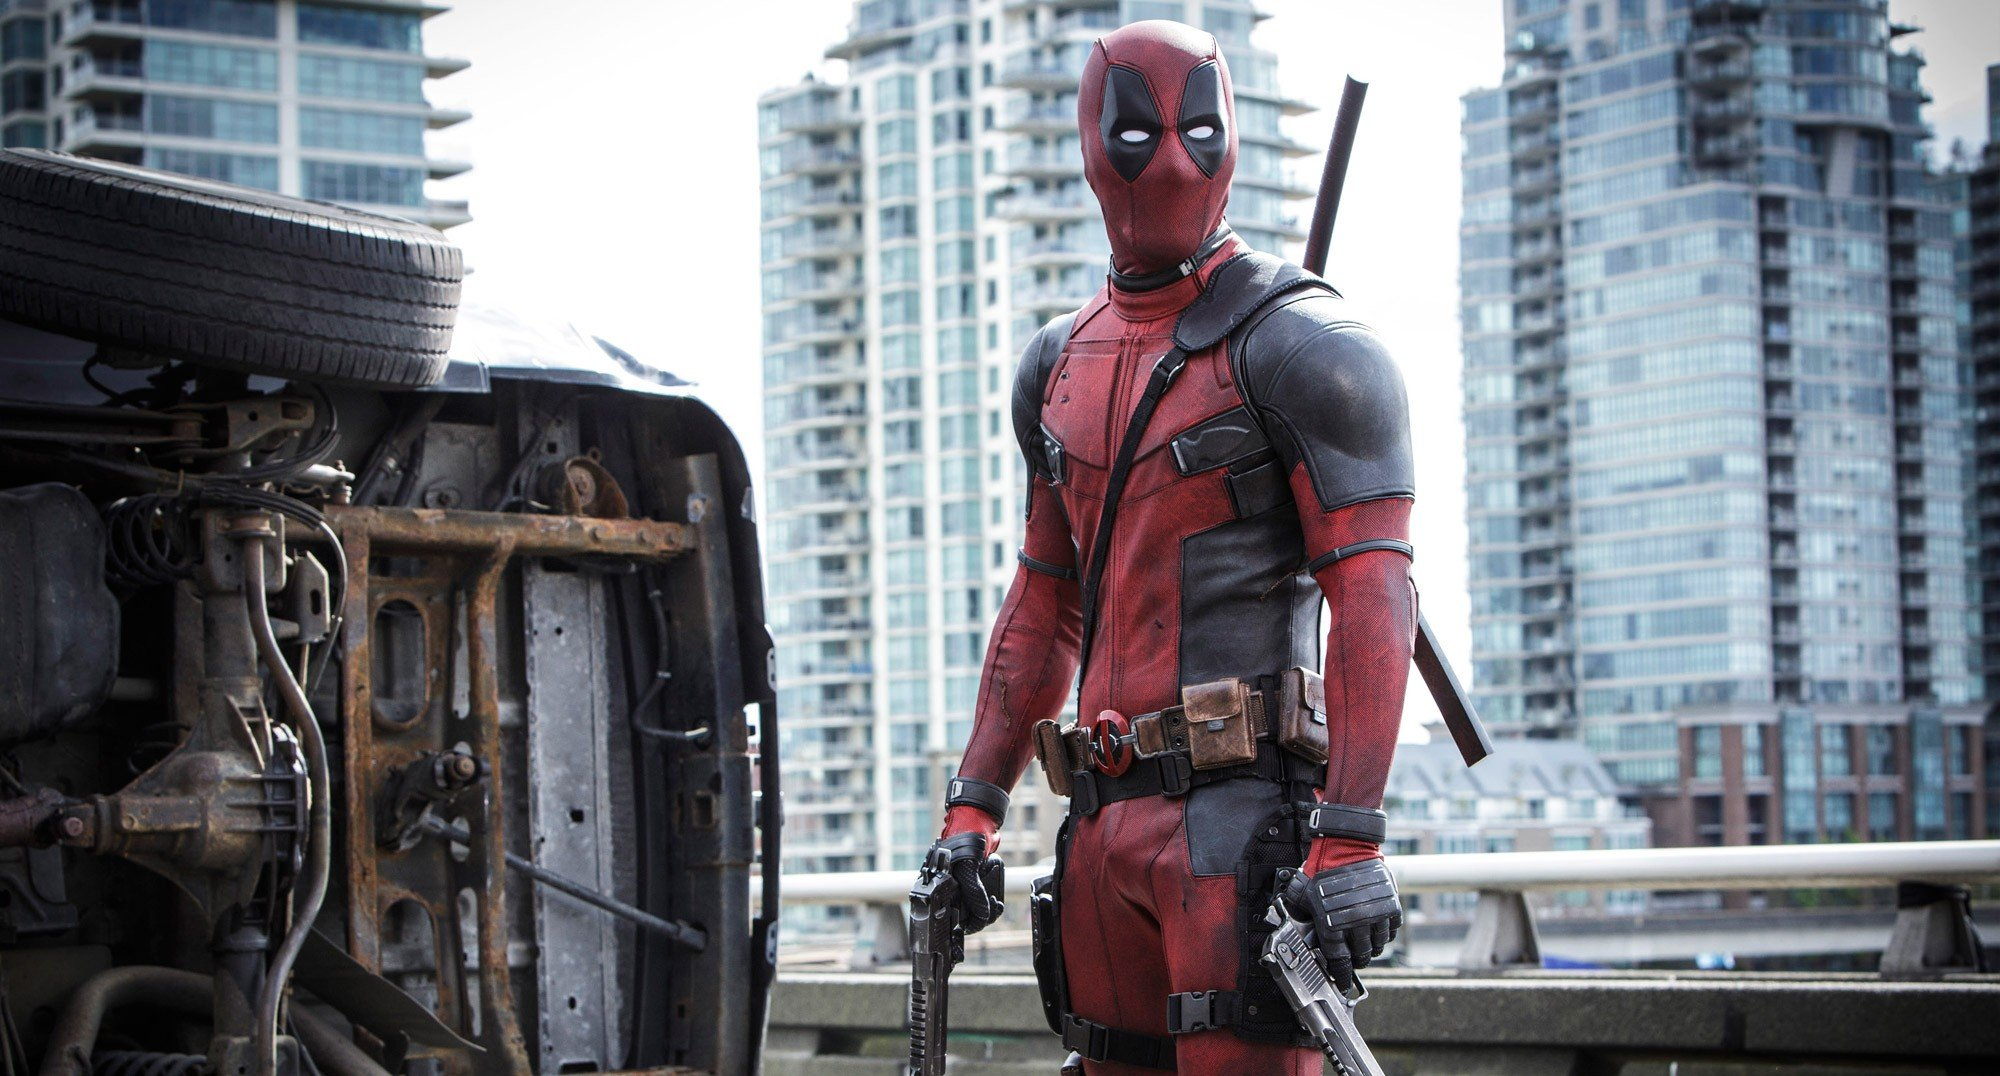 Deadpool Review - OC Movie Reviews - Movie Reviews, Movie News, Documentary Reviews, Short Films, Short Film Reviews, Trailers, Movie Trailers, Interviews, film reviews, film news, hollywood, indie films, documentaries